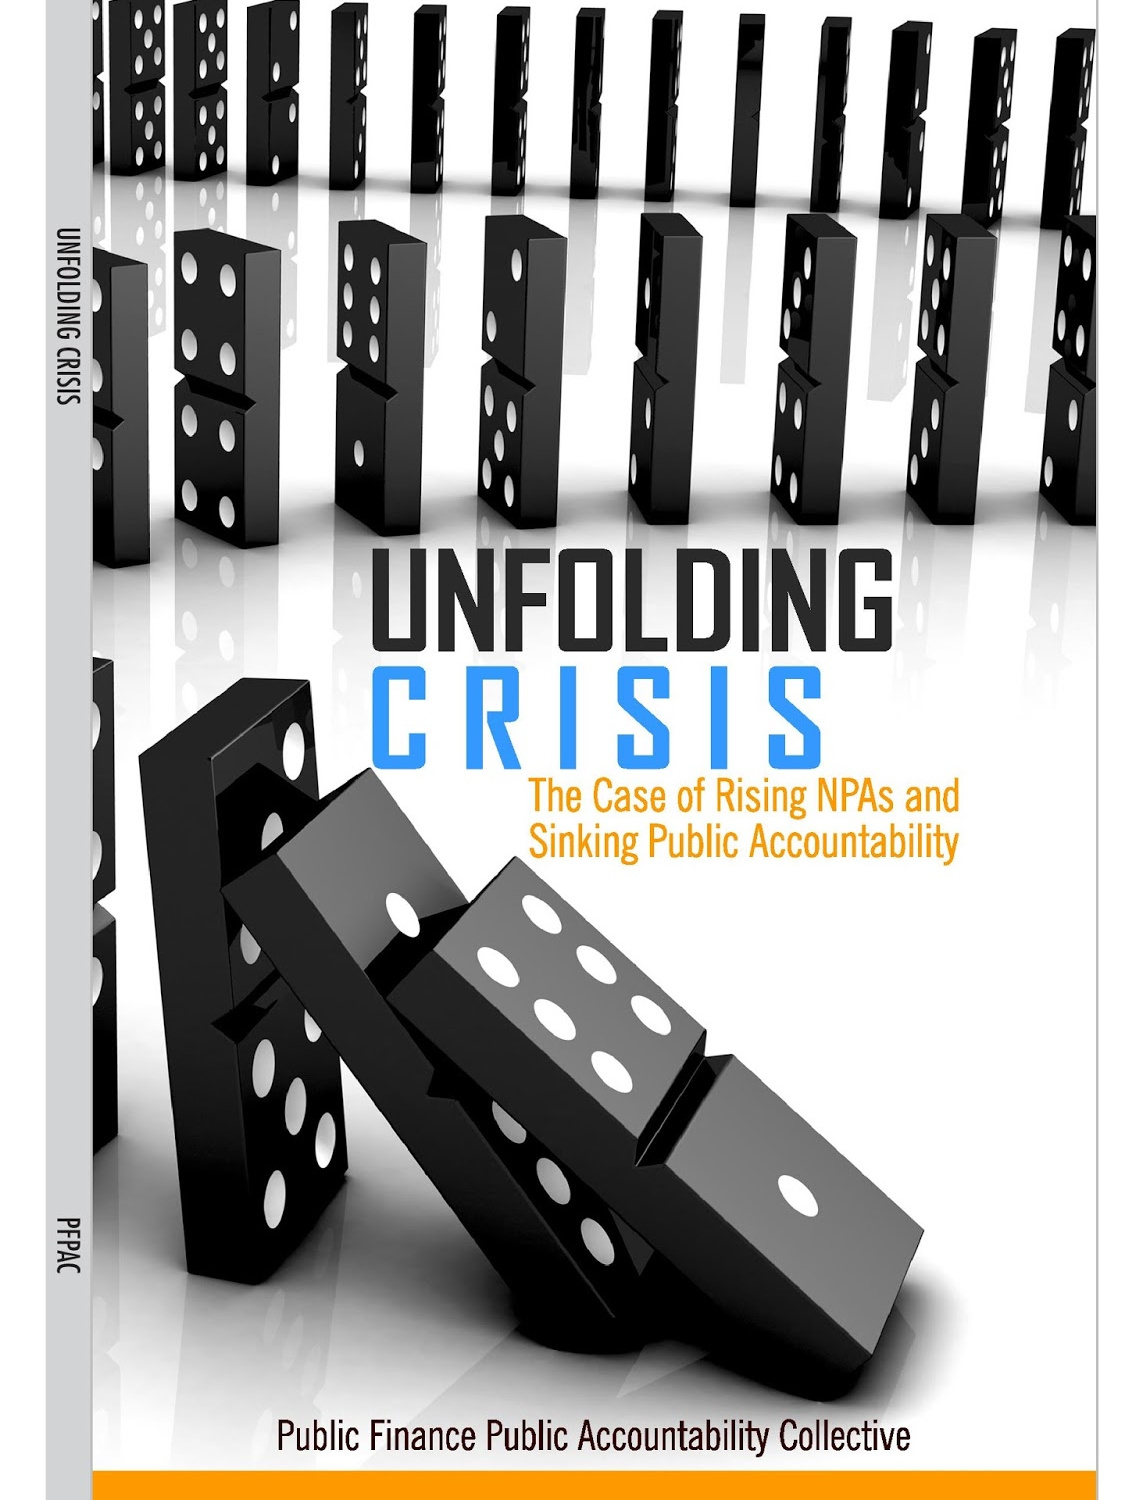 unfolding-crisis-the-case-of-rising-npas-and-sinking-public-accountability.jpg